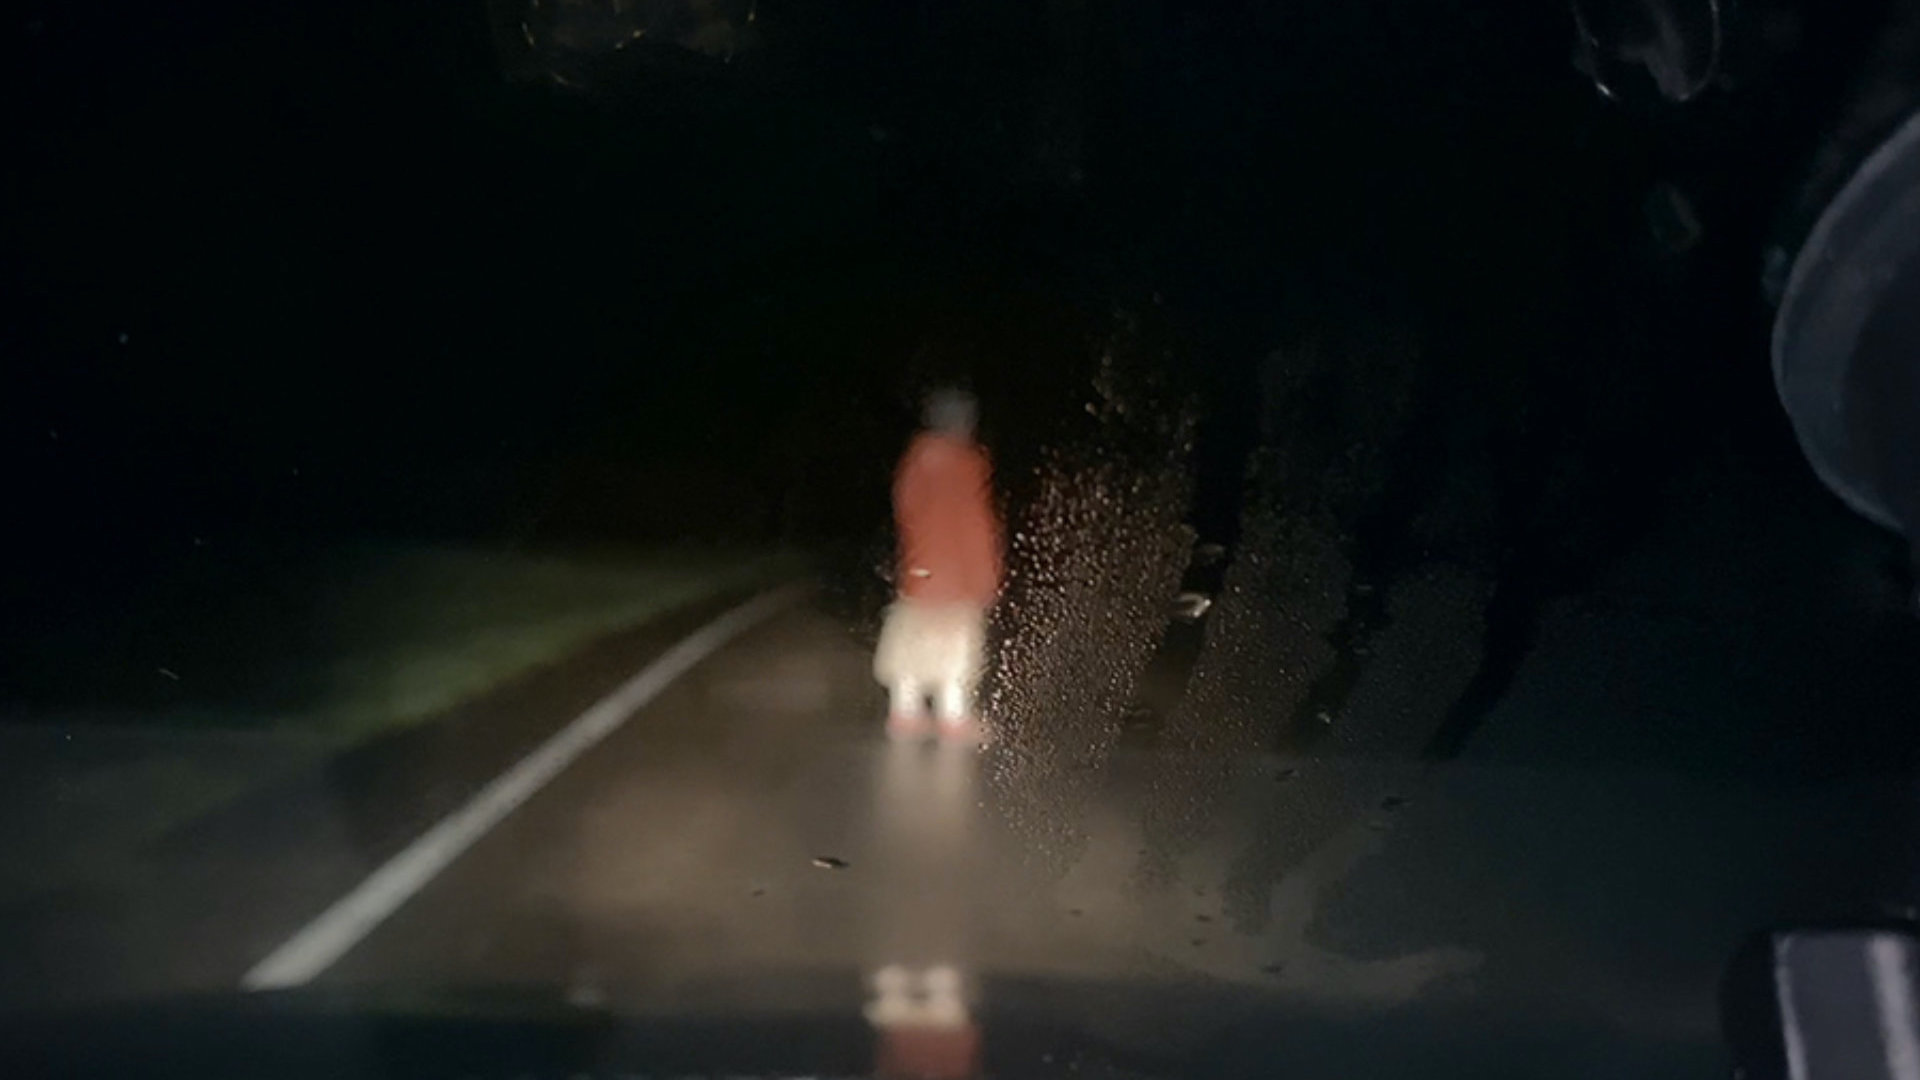 This is a film still from DASHCAM at BFI London Film Festival.